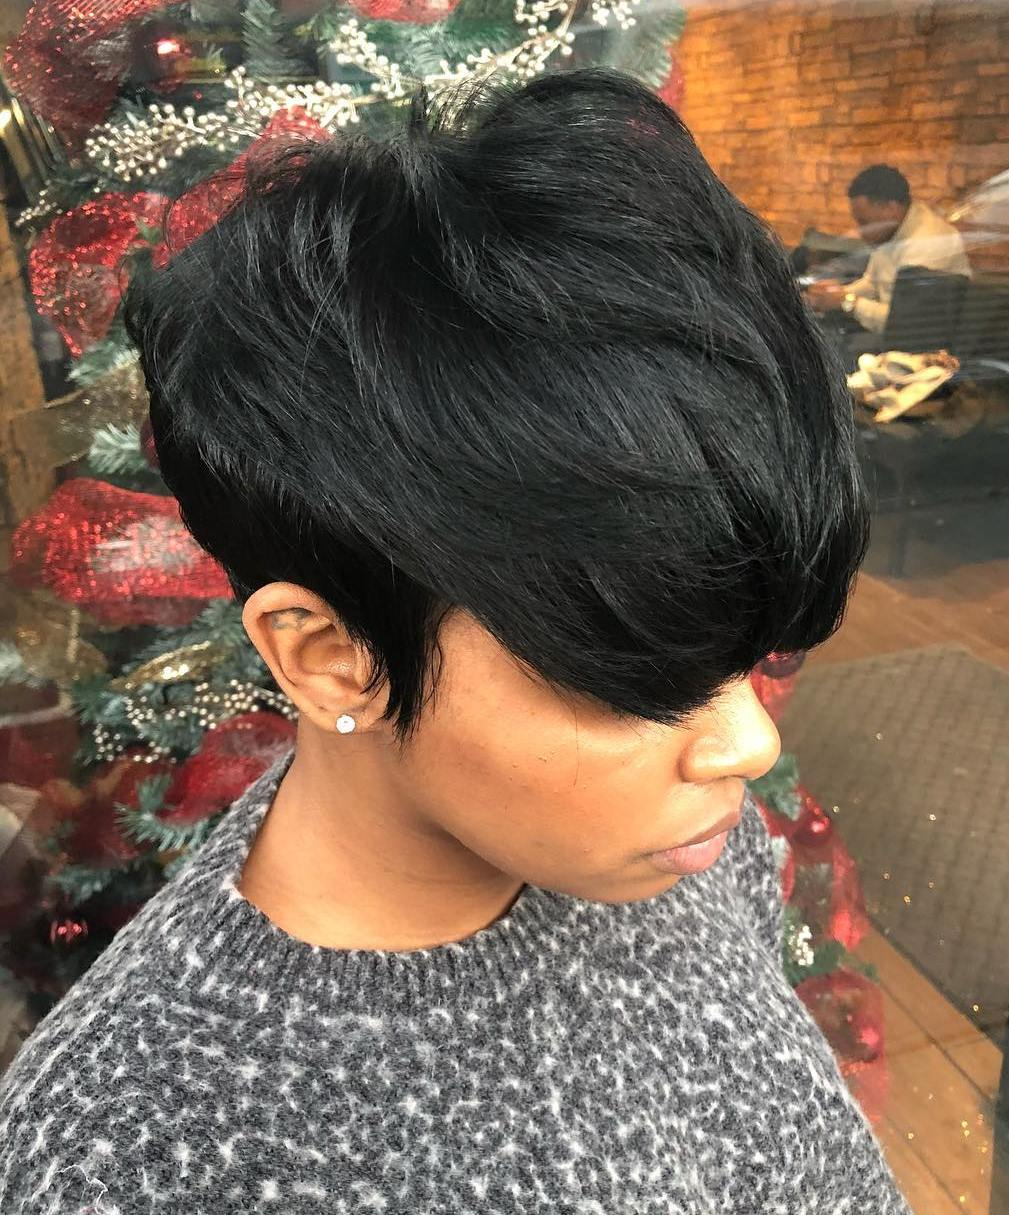 Short Textured Black Haircut with Bangs